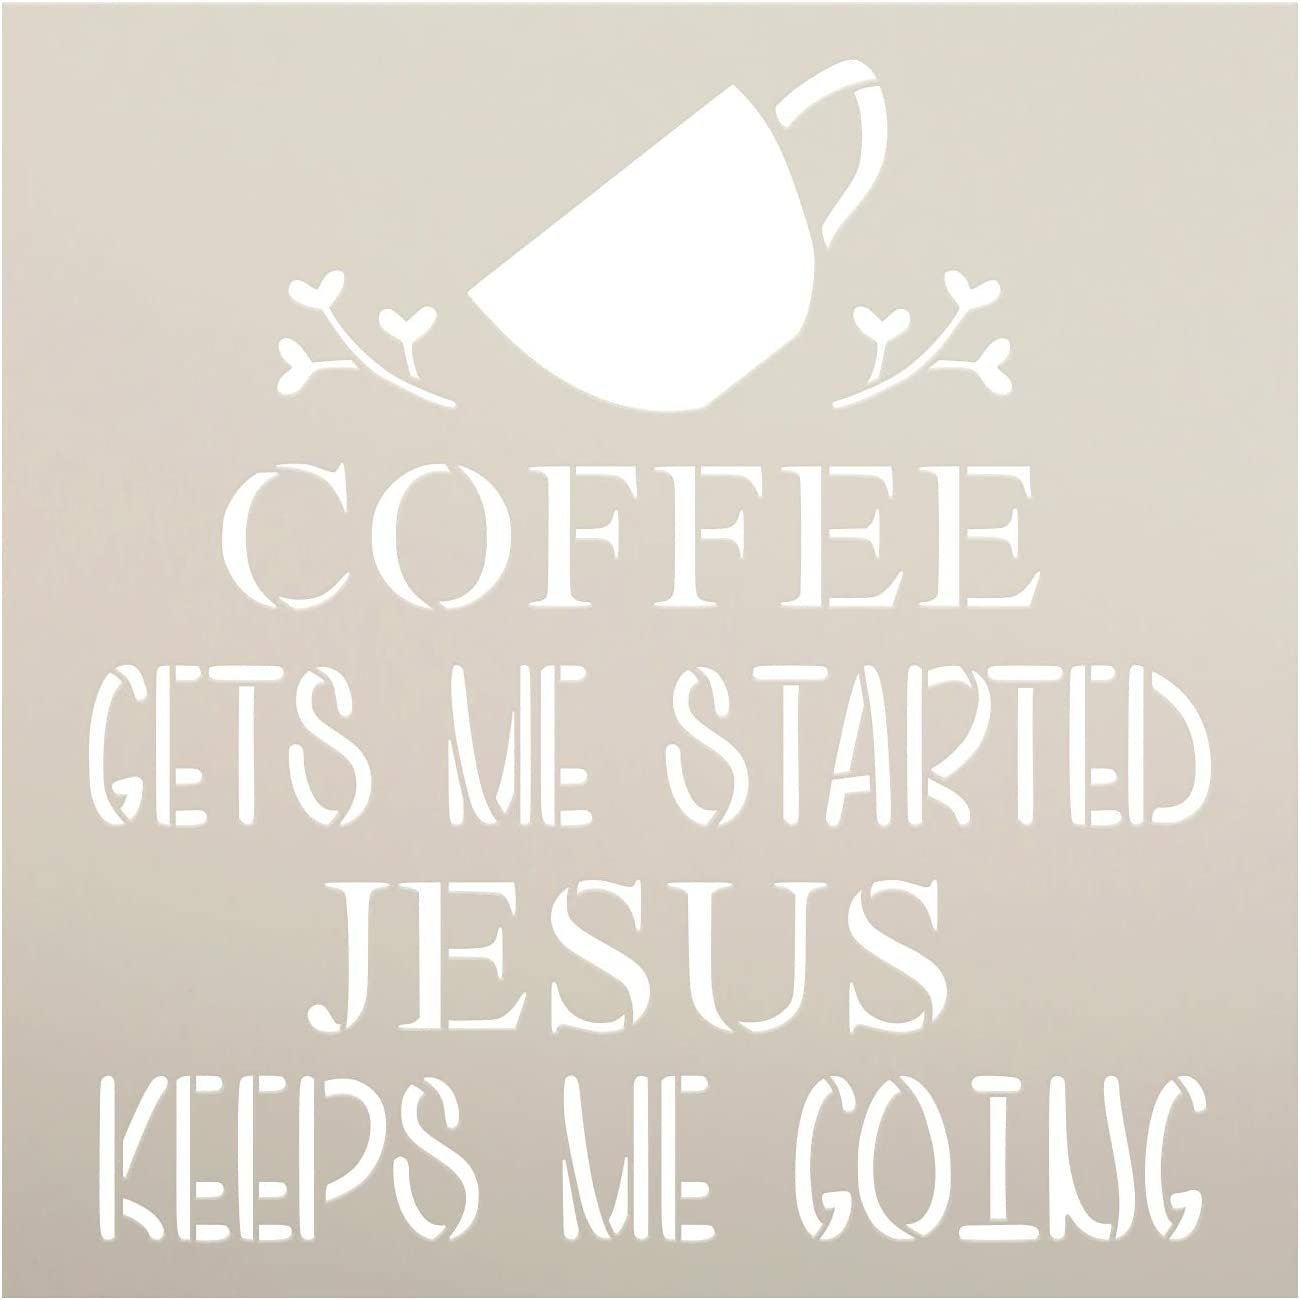 Coffee - Jesus Keeps Me Going Stencil by StudioR12 | DIY Home Decor | Craft & Paint Wood Sign | Reusable Mylar Template | Funny Kitchen Faith Gift | Select Size